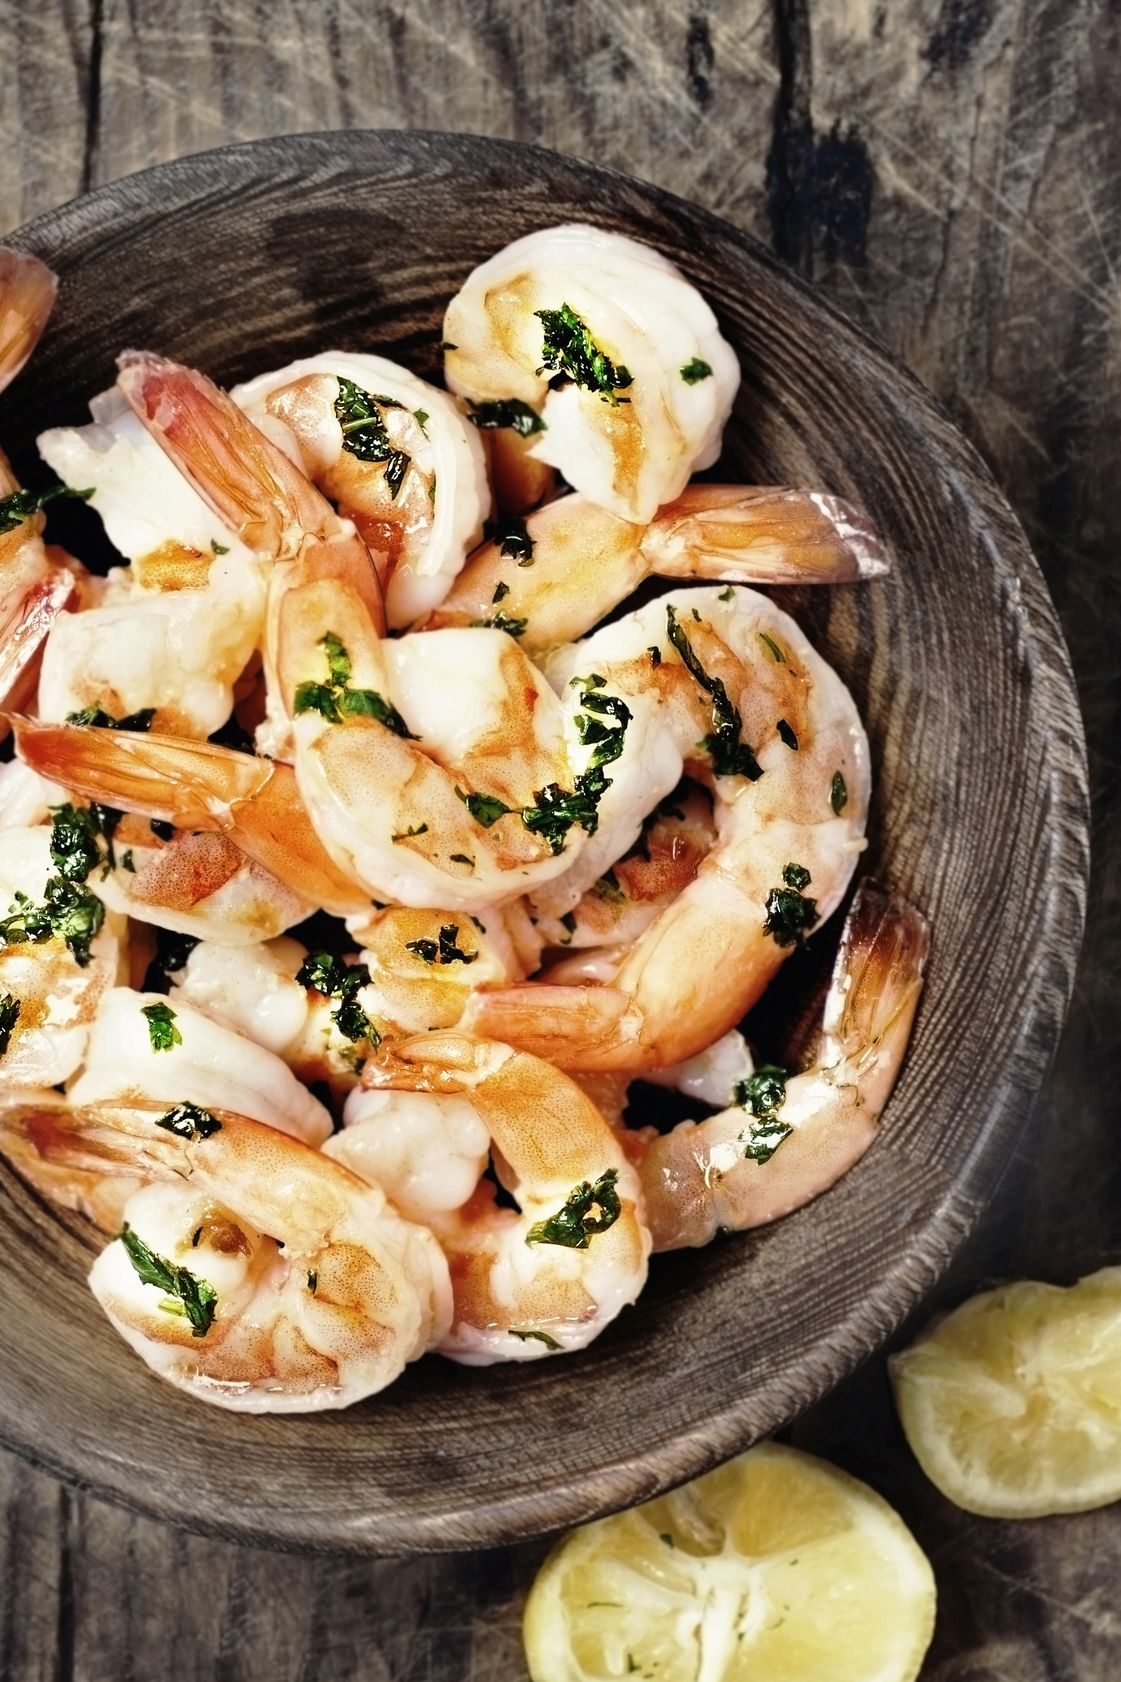 Low Calorie Foods - Shrimp